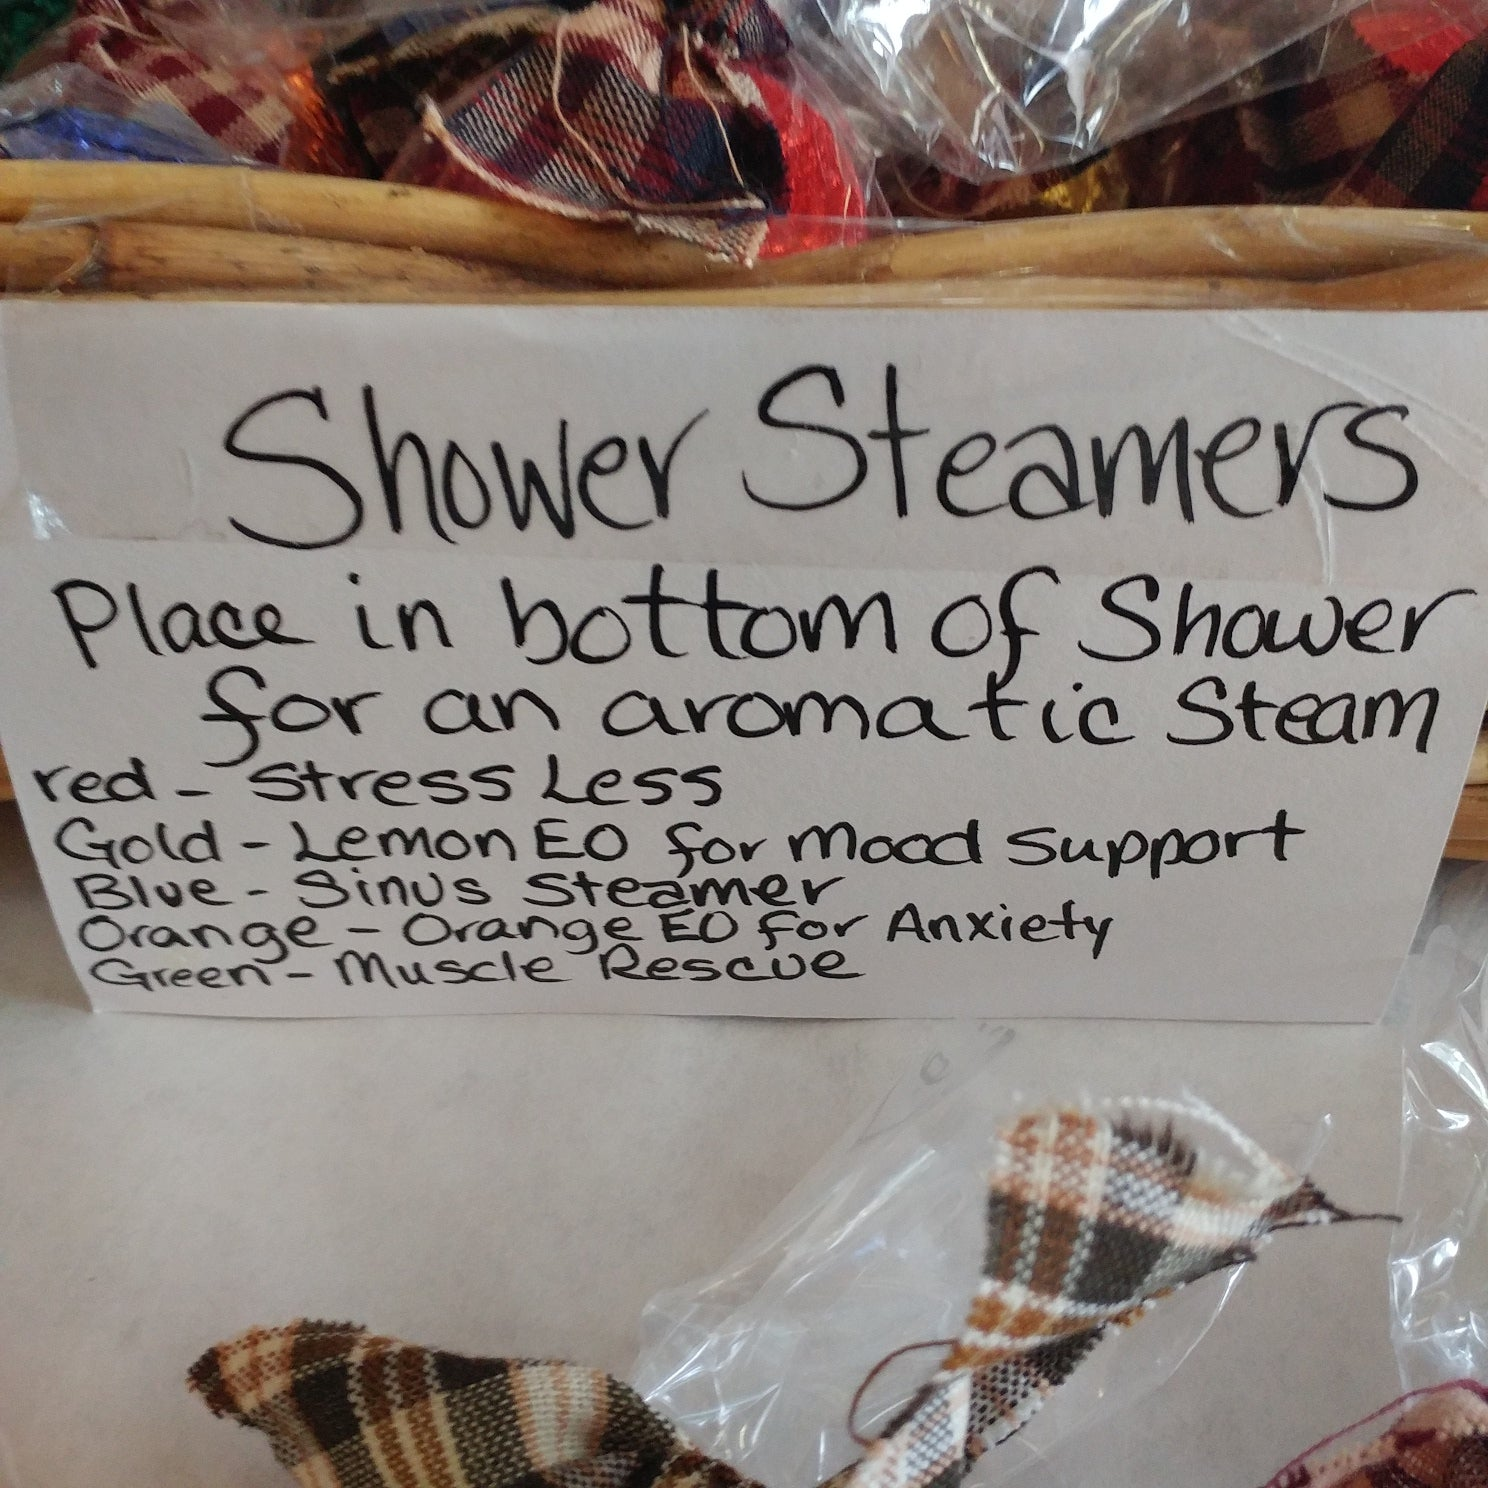 Shower Steamer – Orange EO Immunity Boost/Anxiety Support